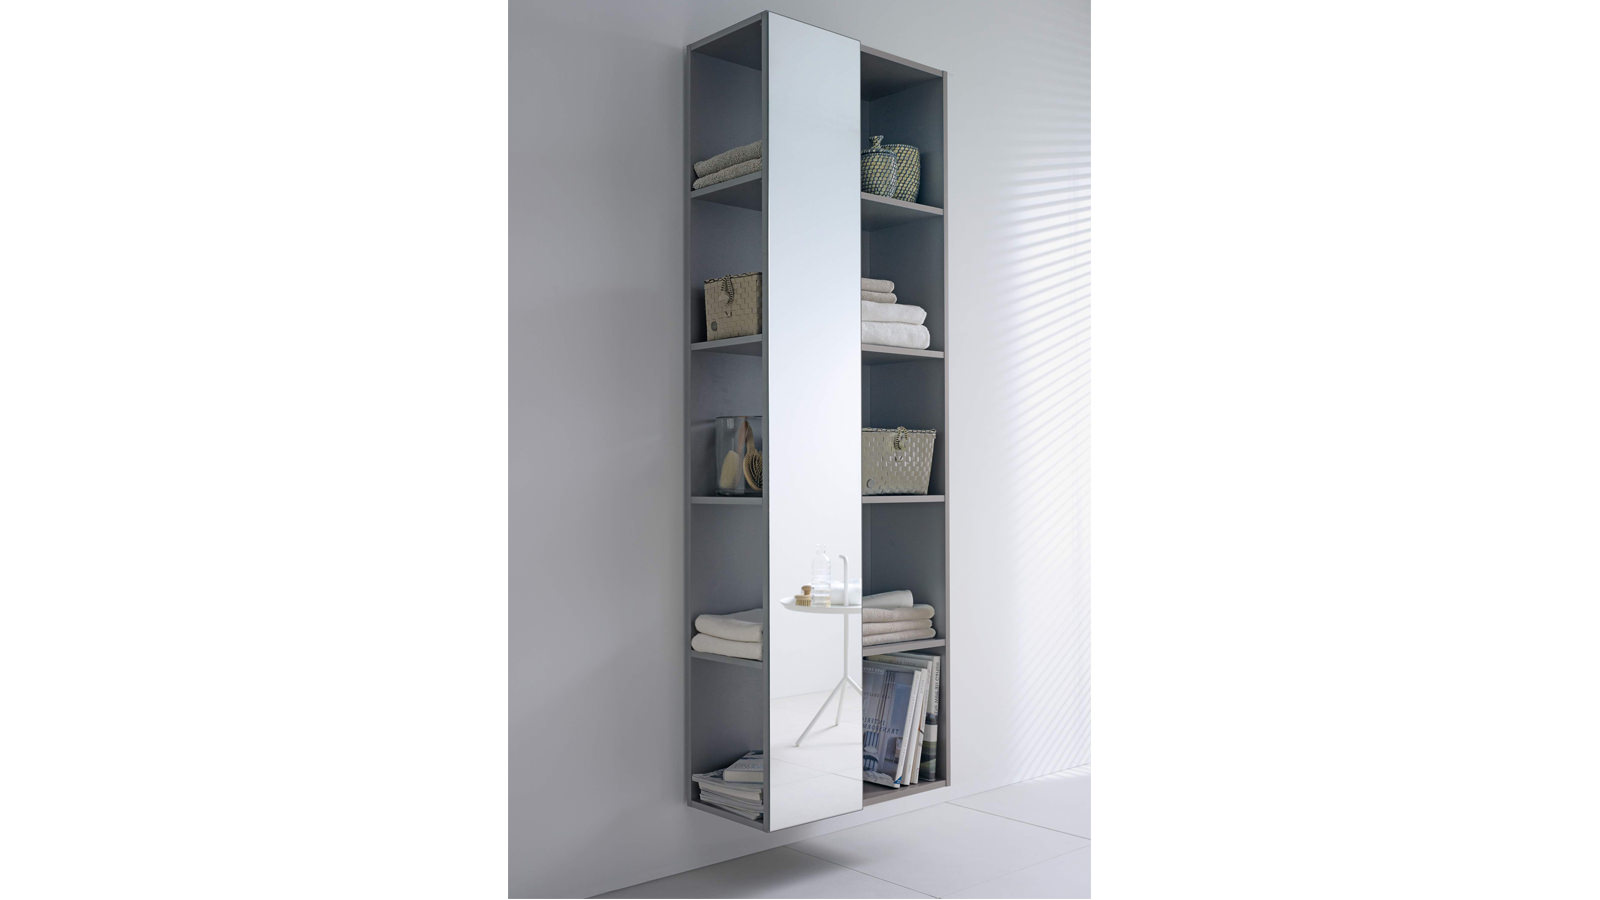 duravit darling new shelf tall with left side mirror. Black Bedroom Furniture Sets. Home Design Ideas